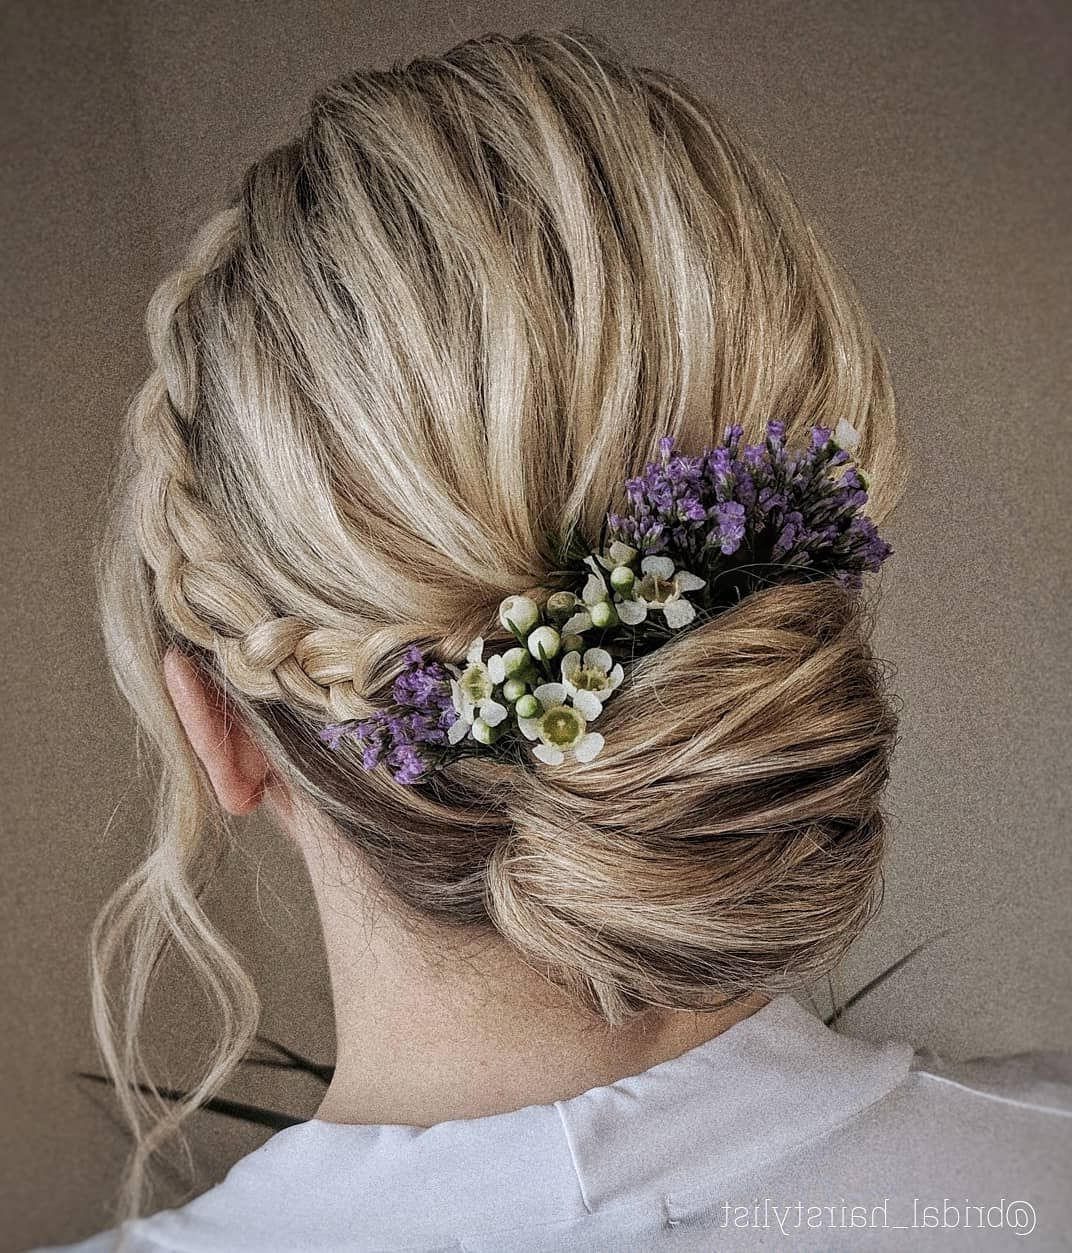 50 Most Beautiful Bridal Hair Style From Real Weddings – Page 34 Of Inside Fashionable Braided Lavender Bridal Hairstyles (View 3 of 20)